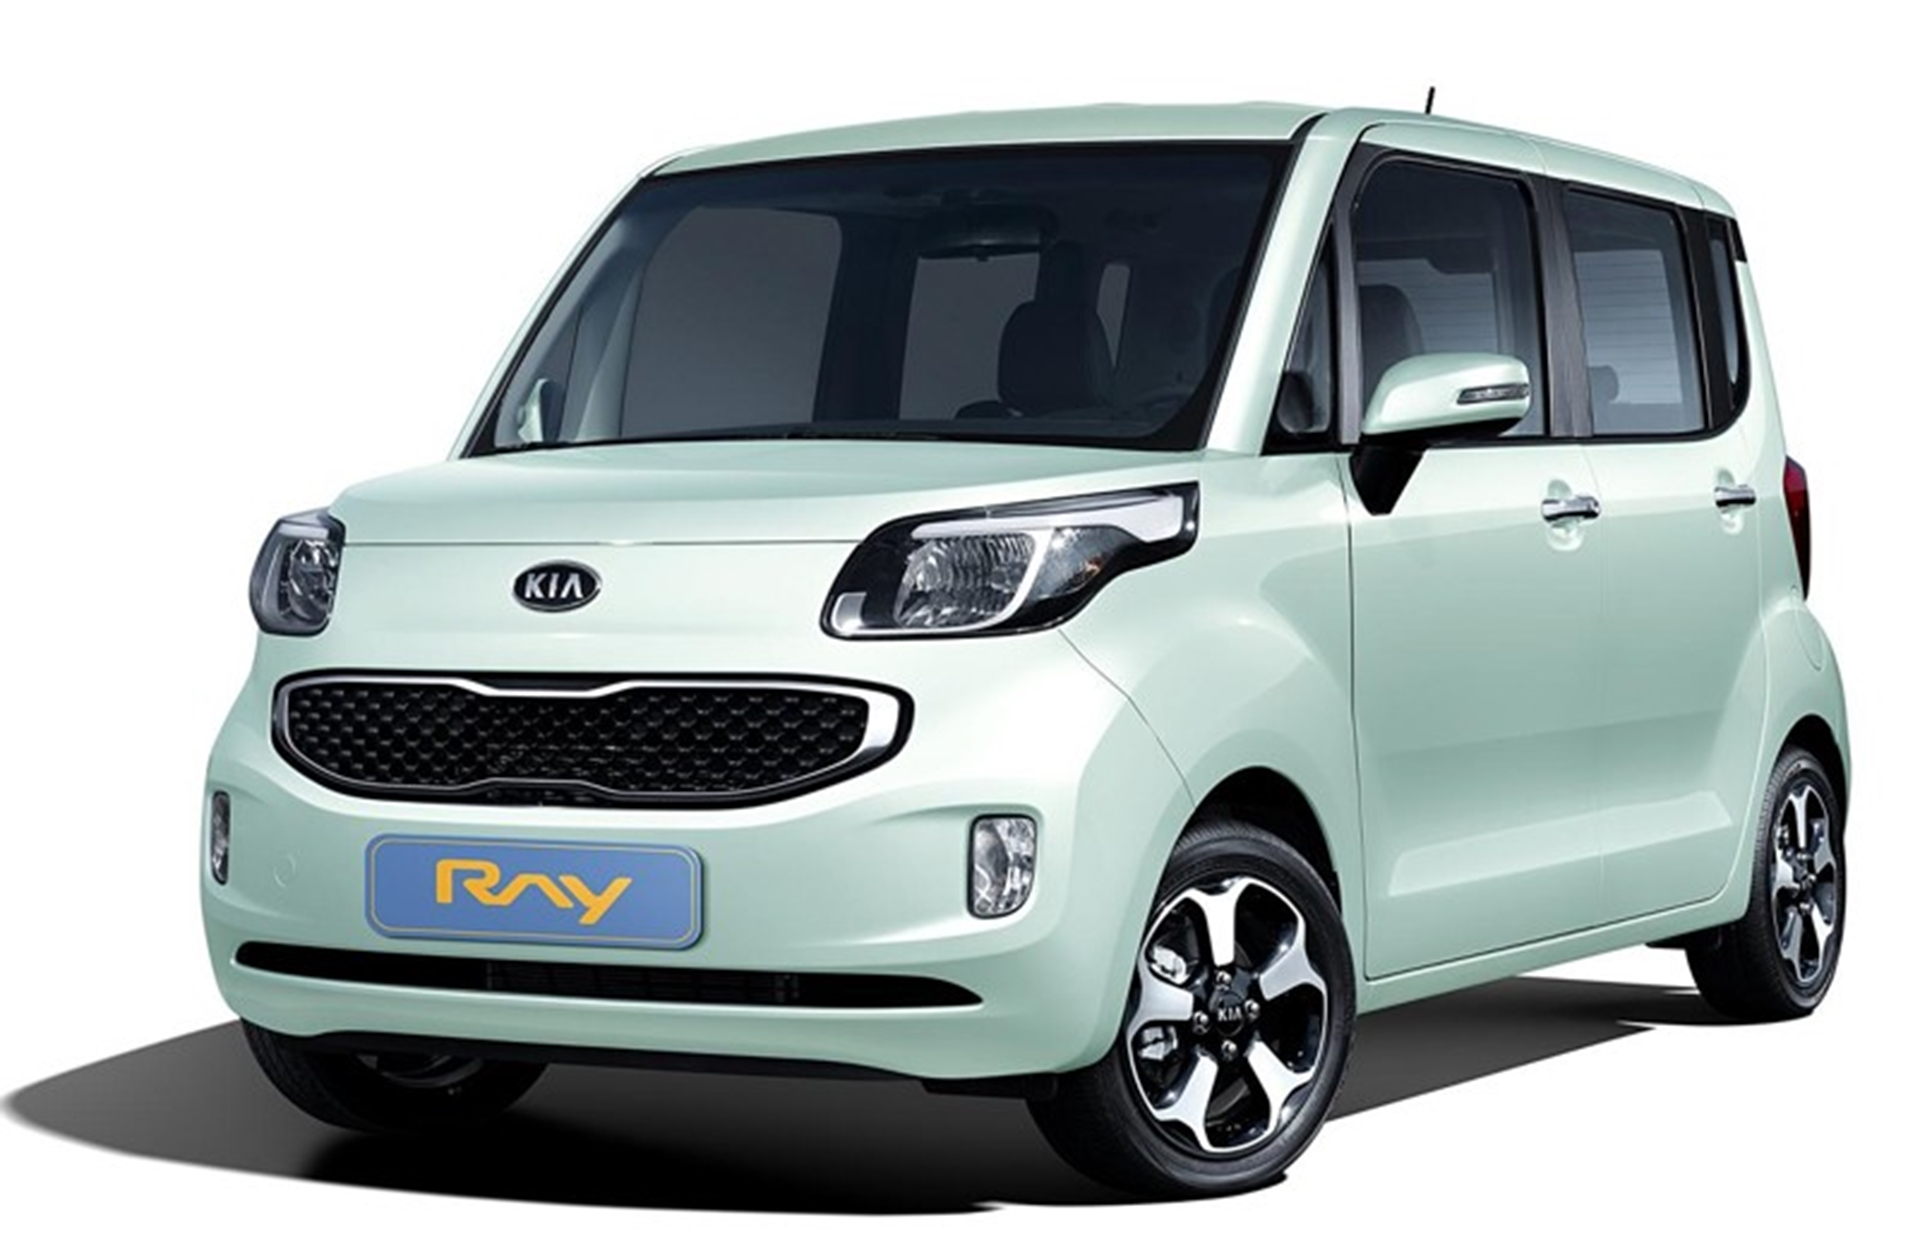 New Kia Ray